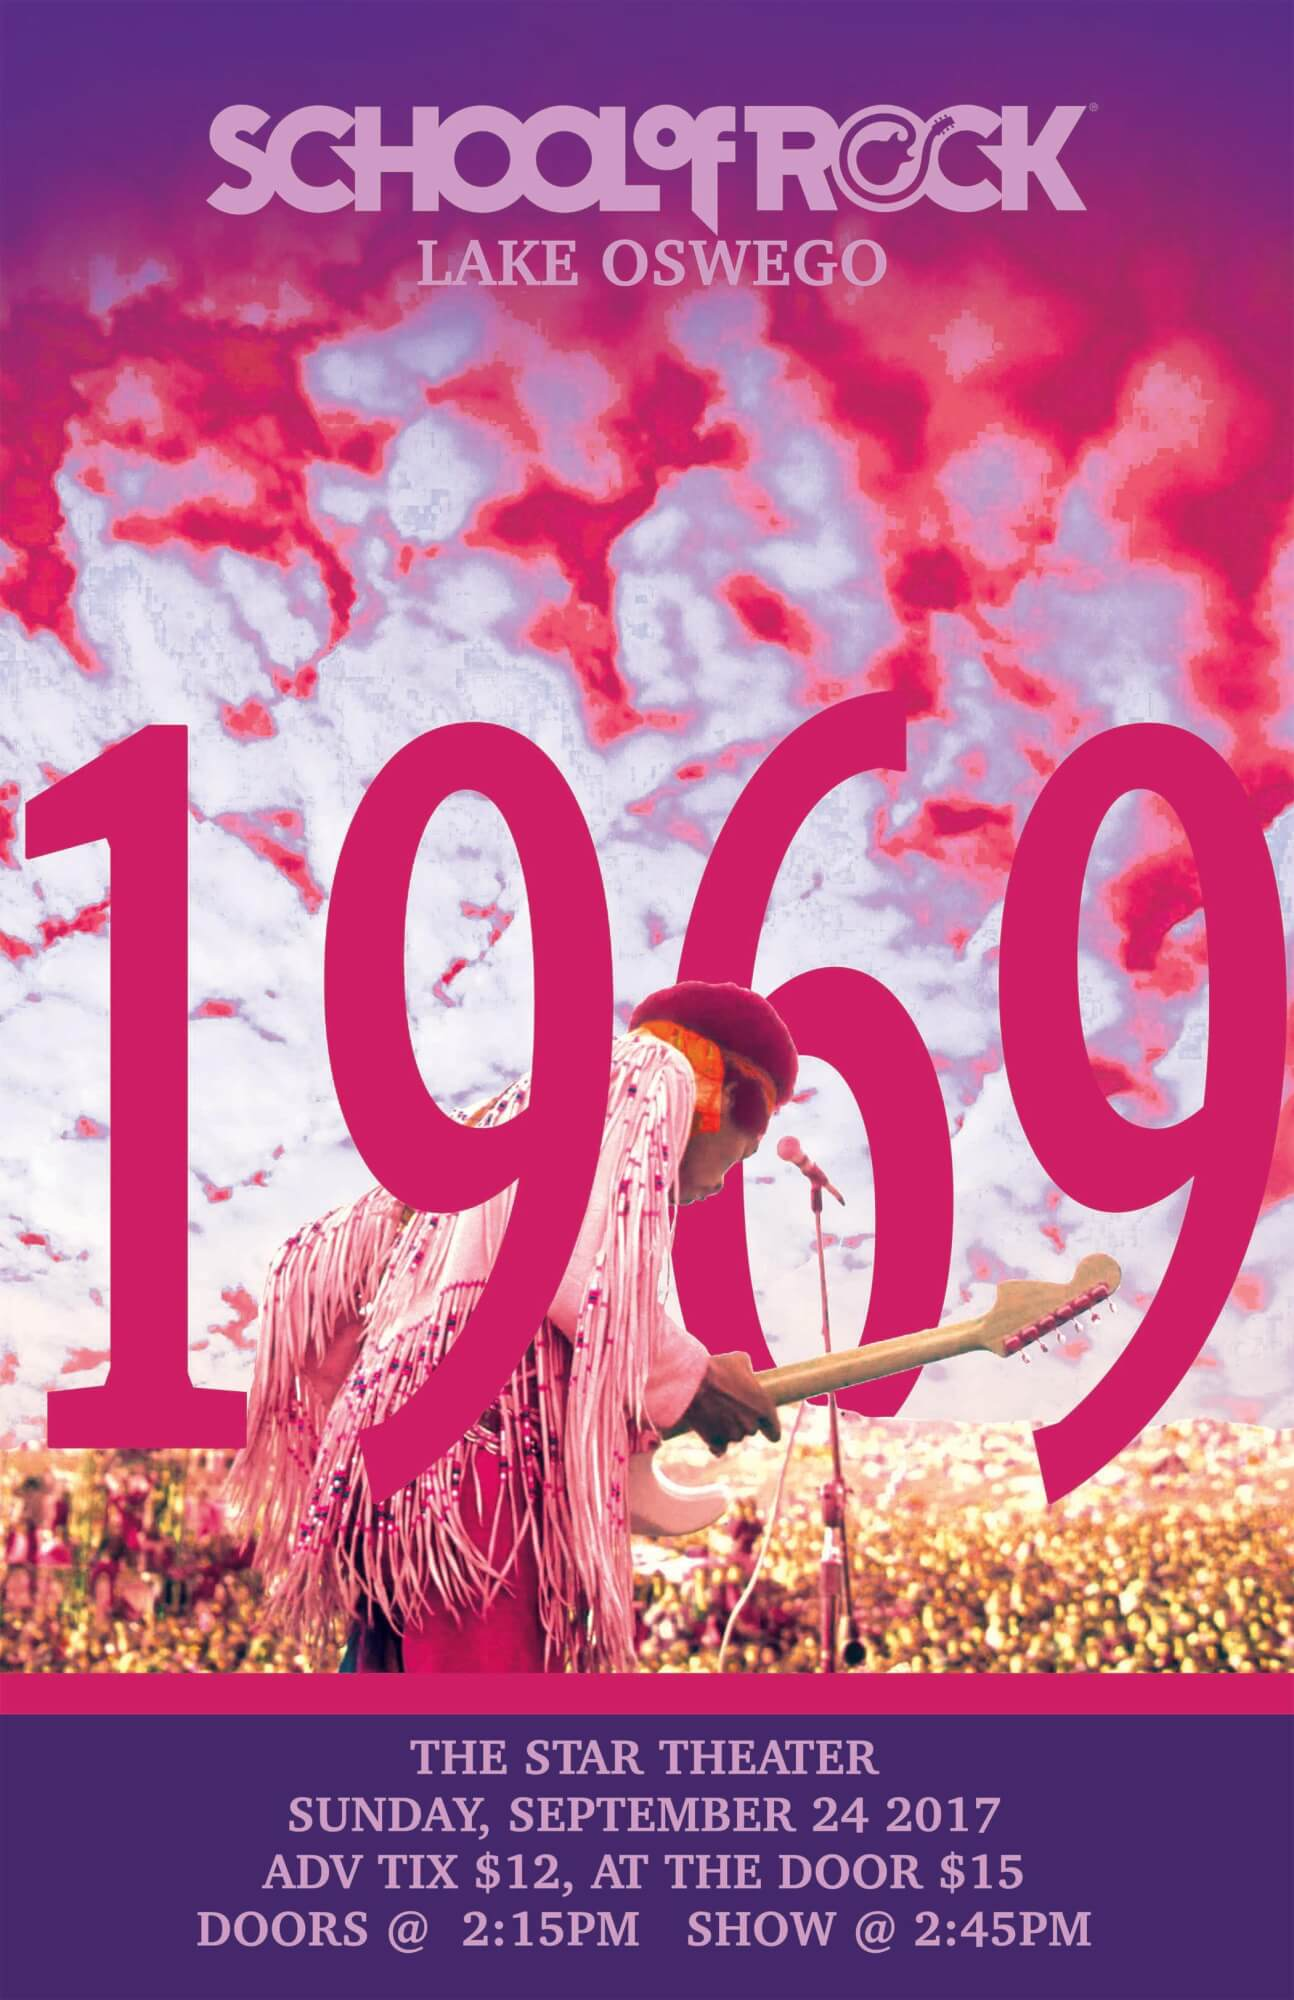 1969 - Awesome year for Rock 'n' Roll